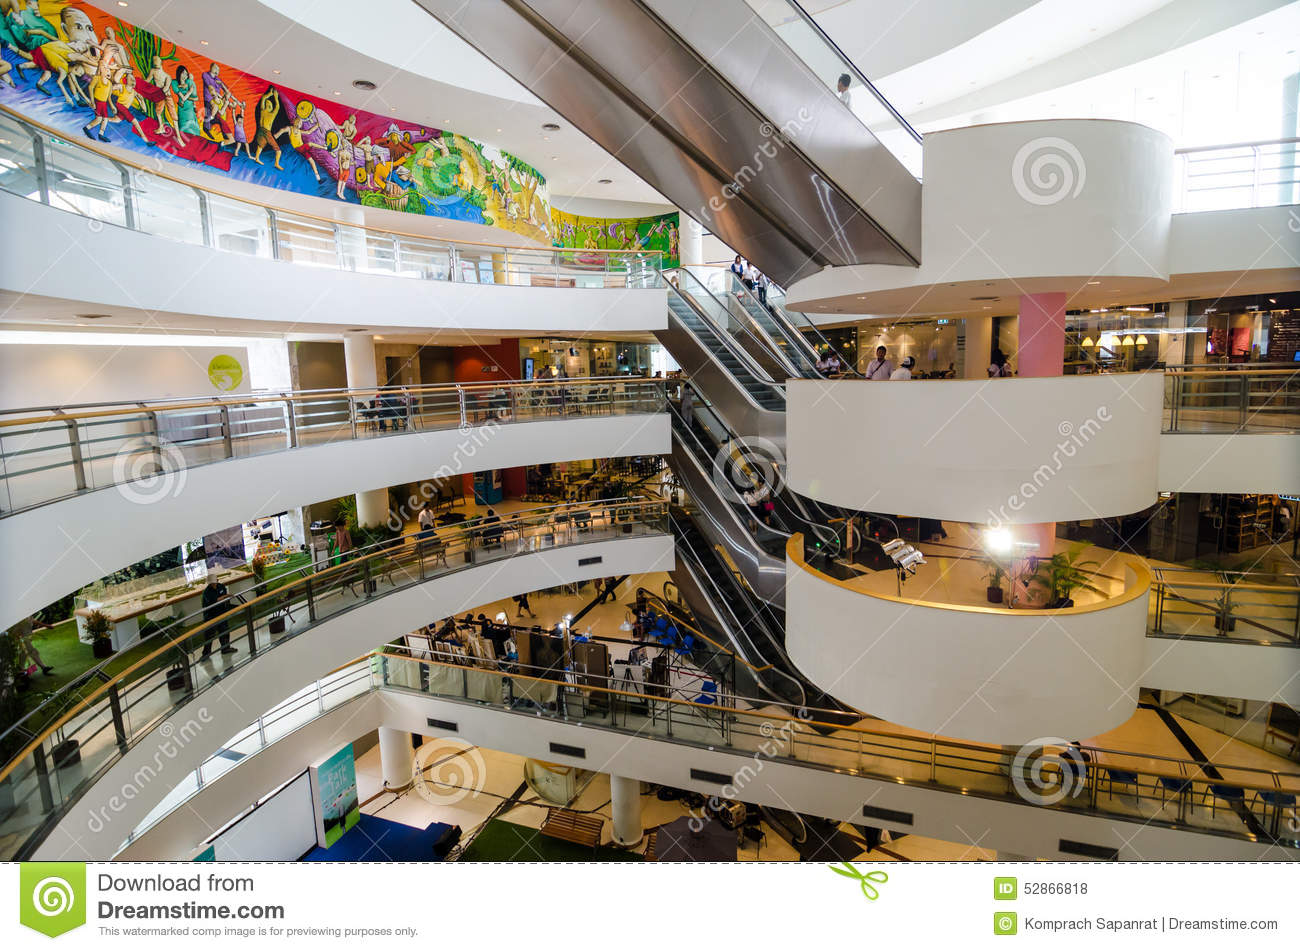 Inside Of Bangkok Art And Culture Centre Editorial Stock Photo - Image: 52866818